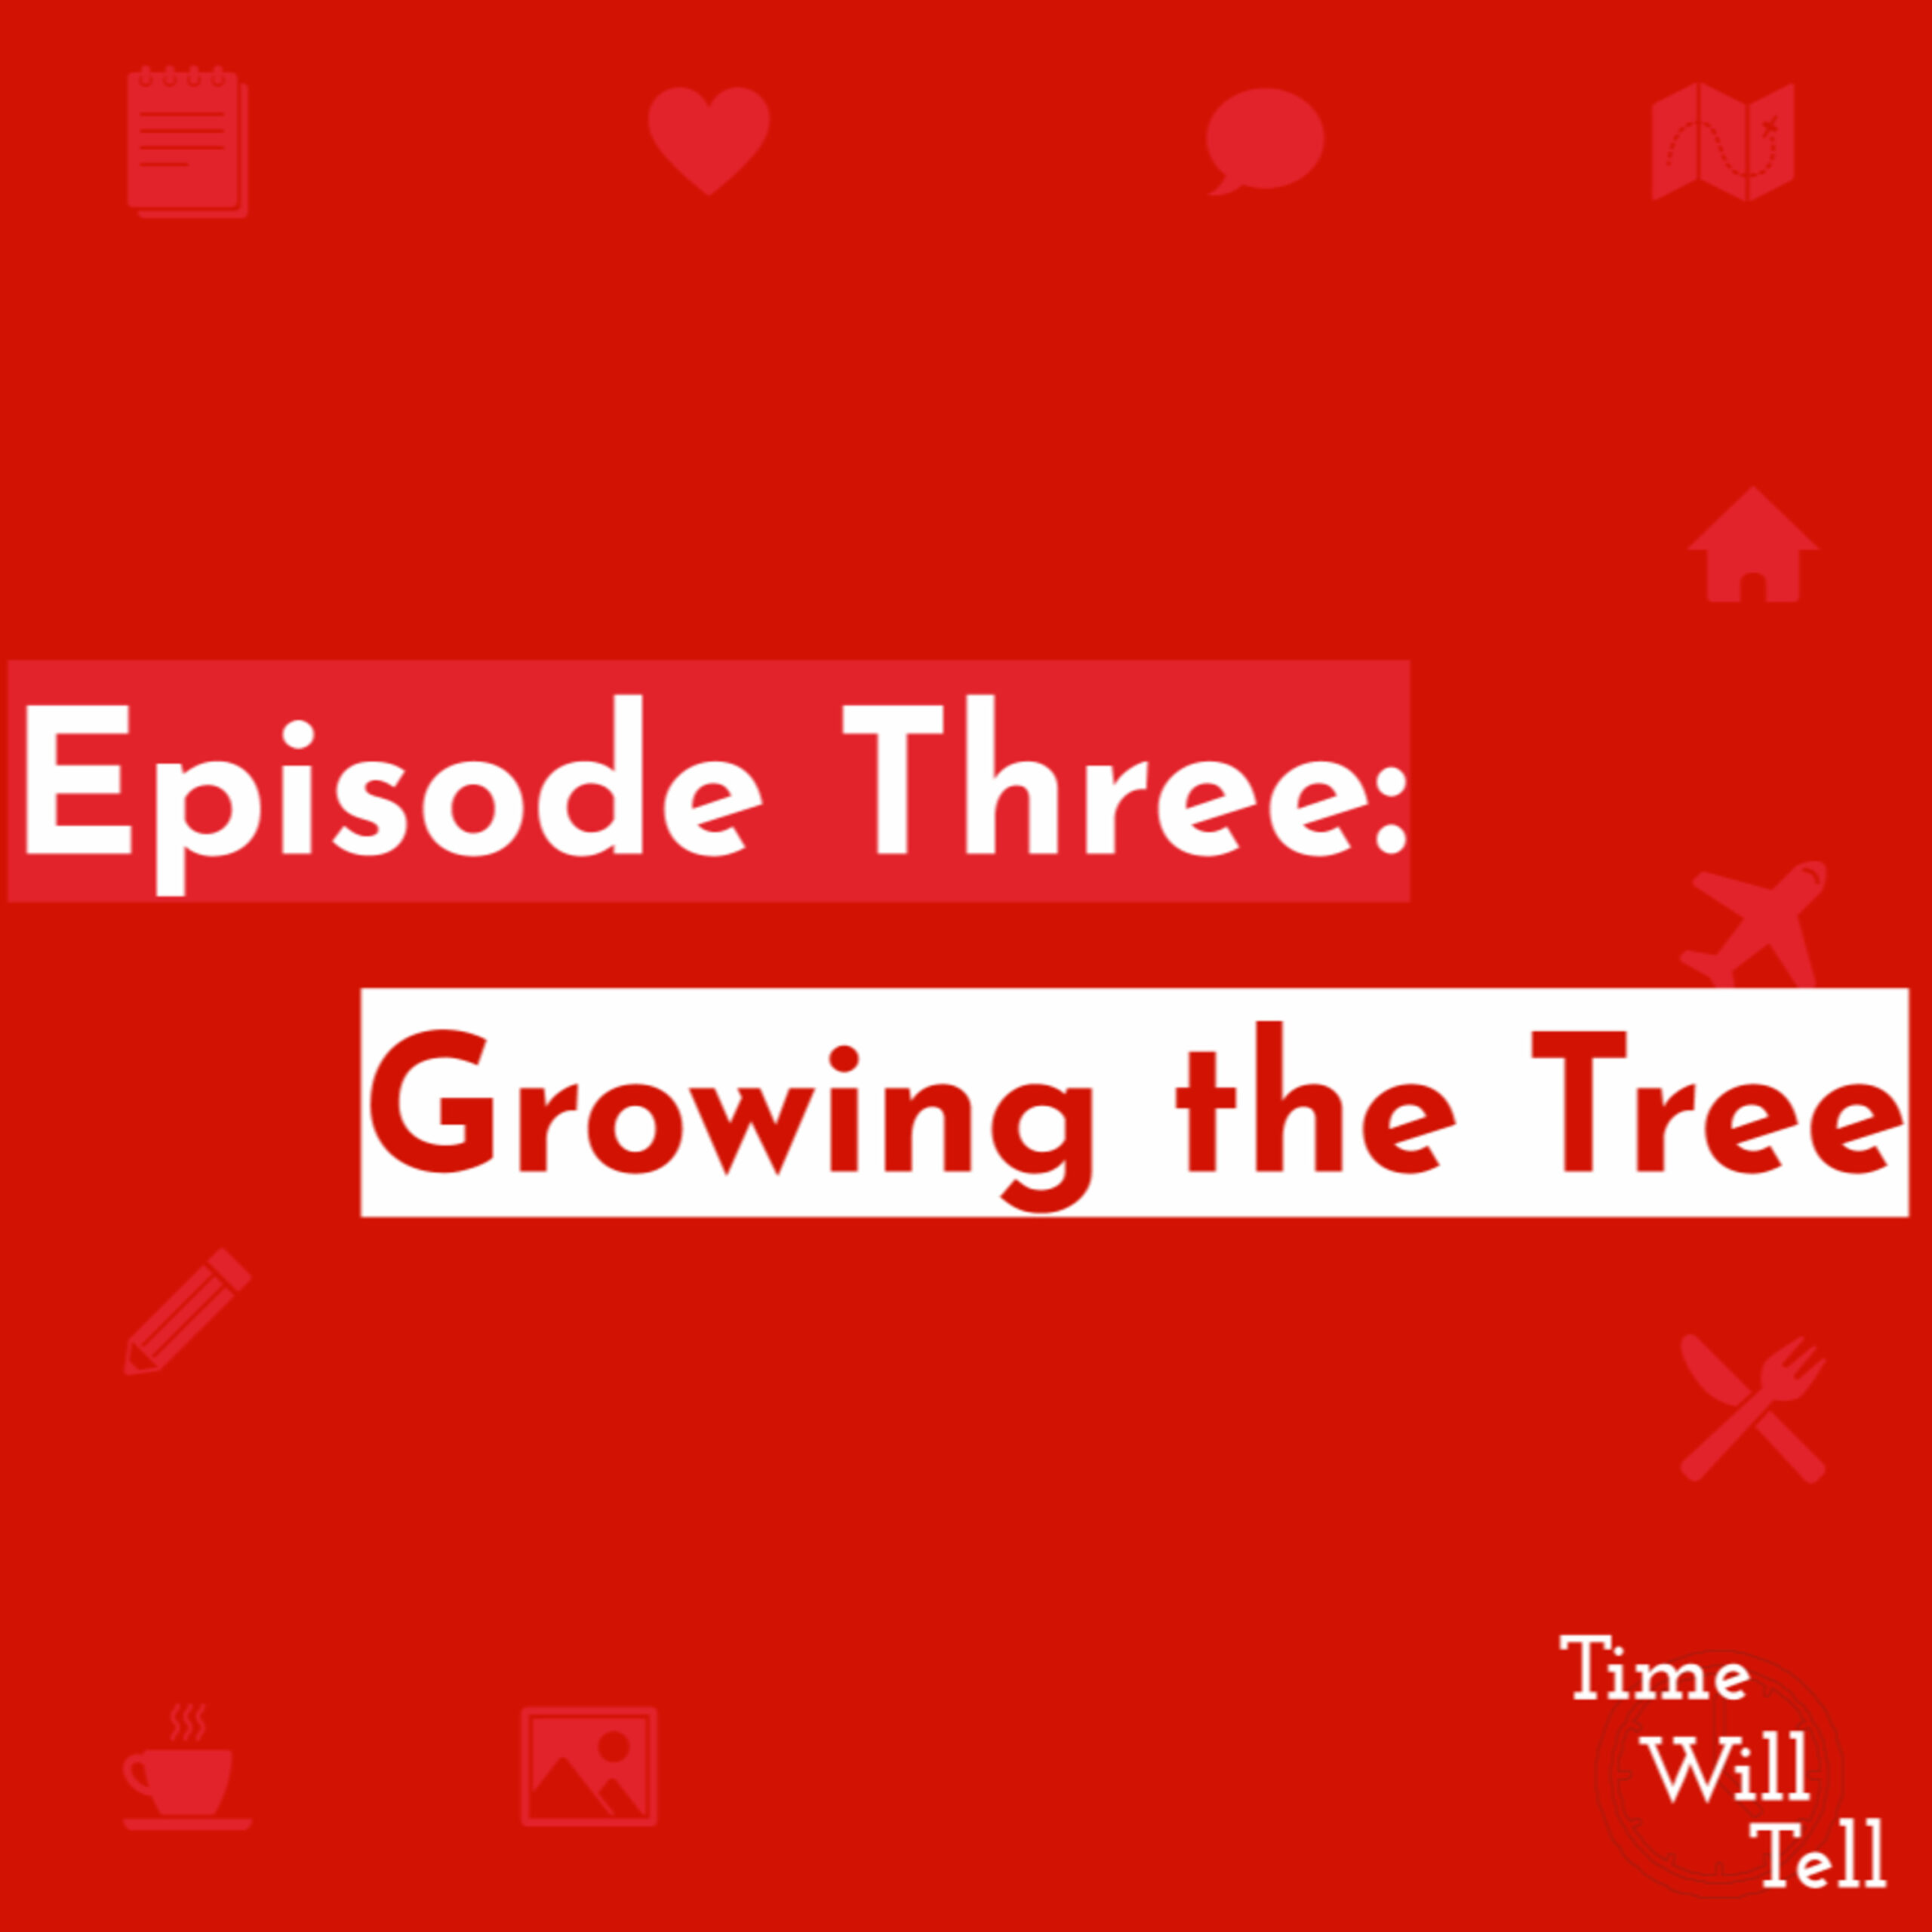 Episode Three: Growing The Tree